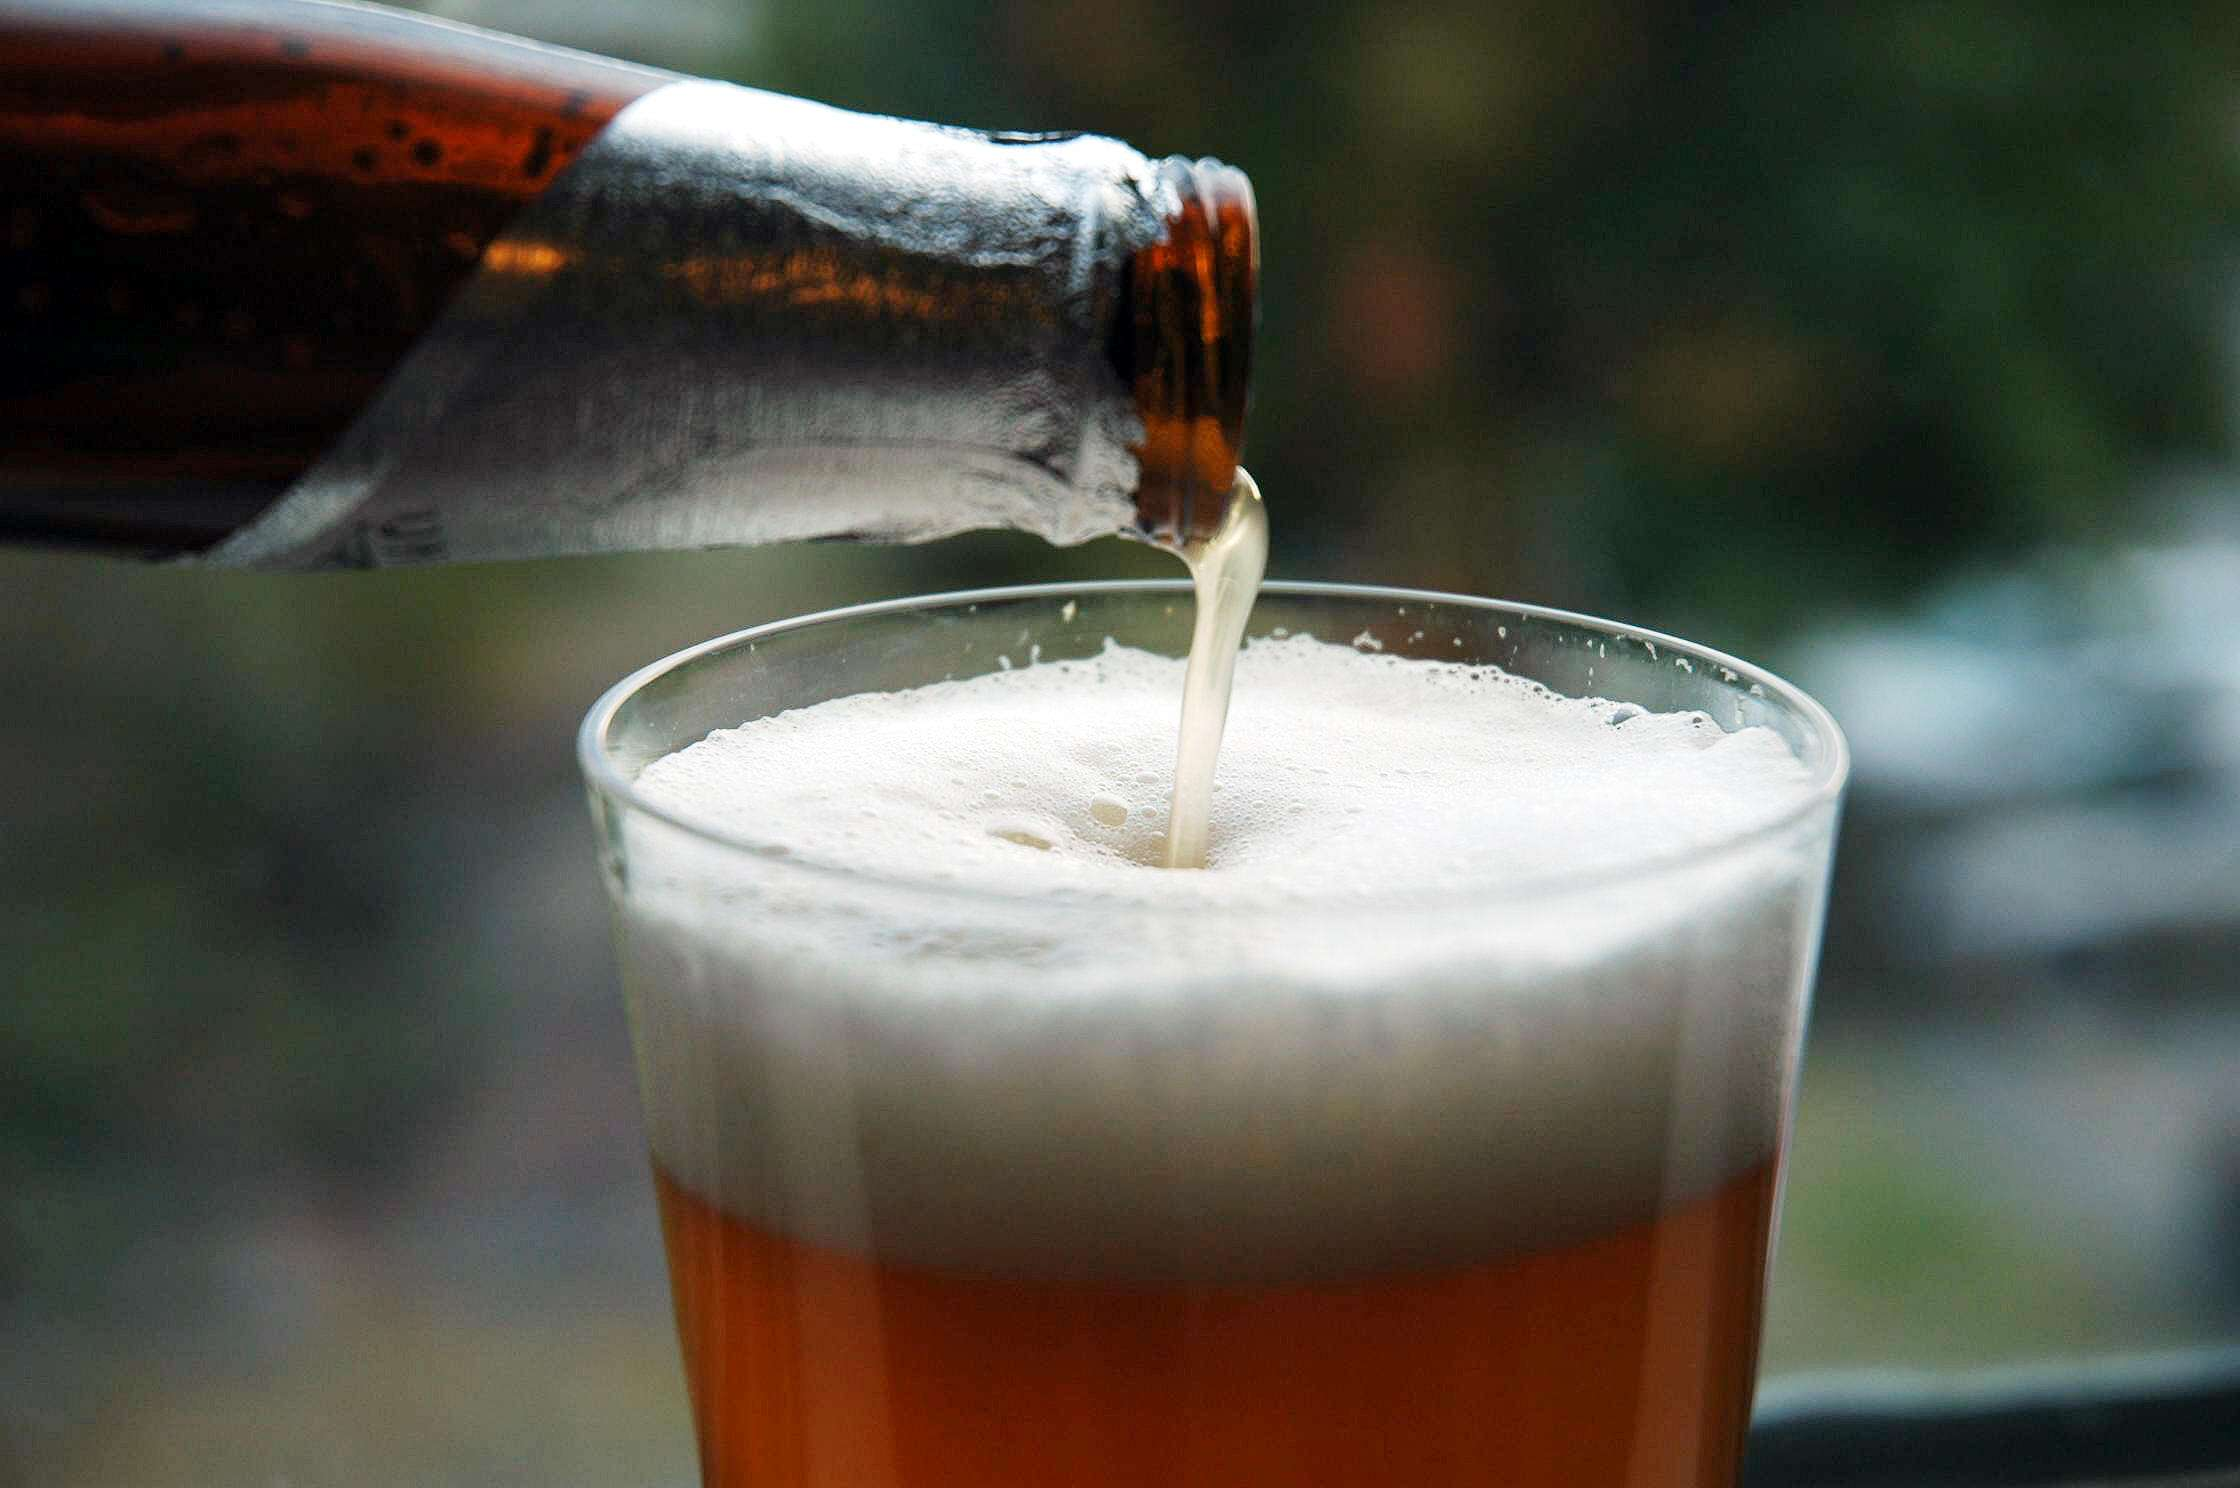 A beer being poured into a chilled glass